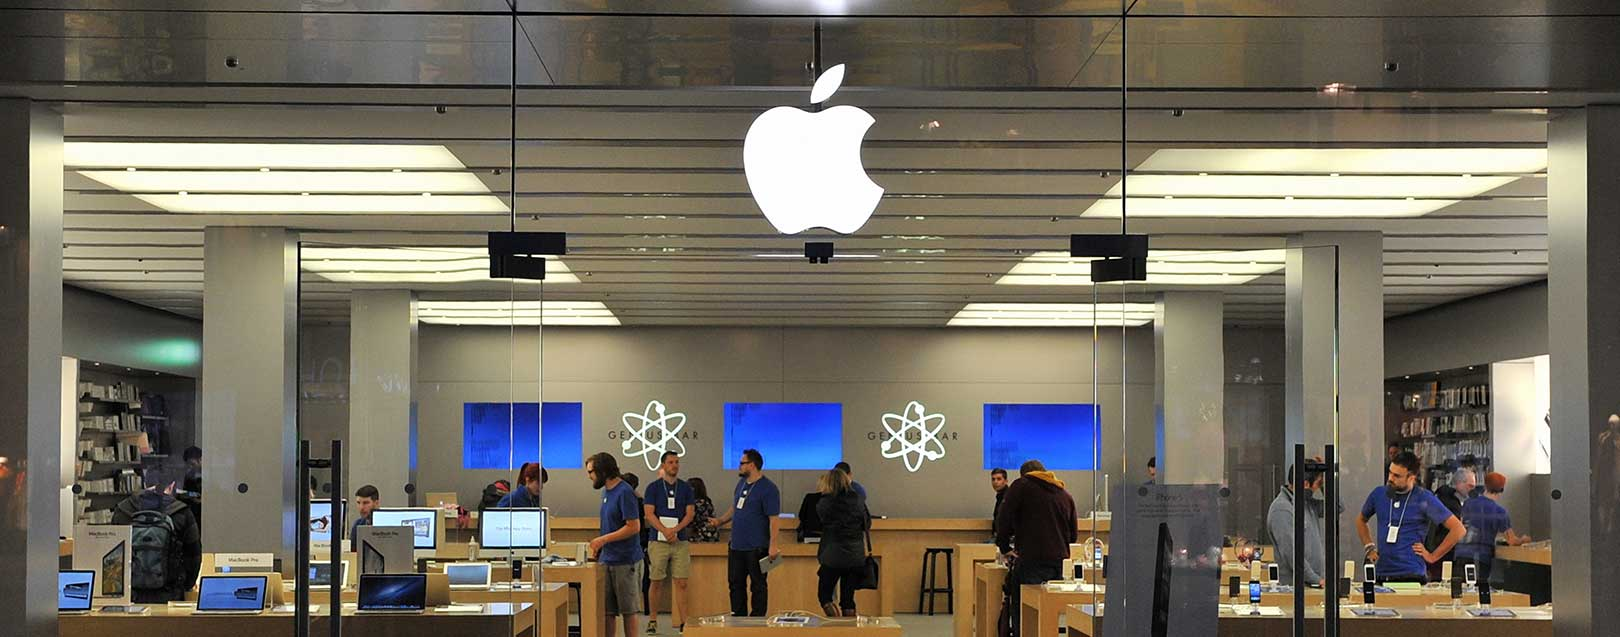 Apple's unit in India will benefit retail sector: Google